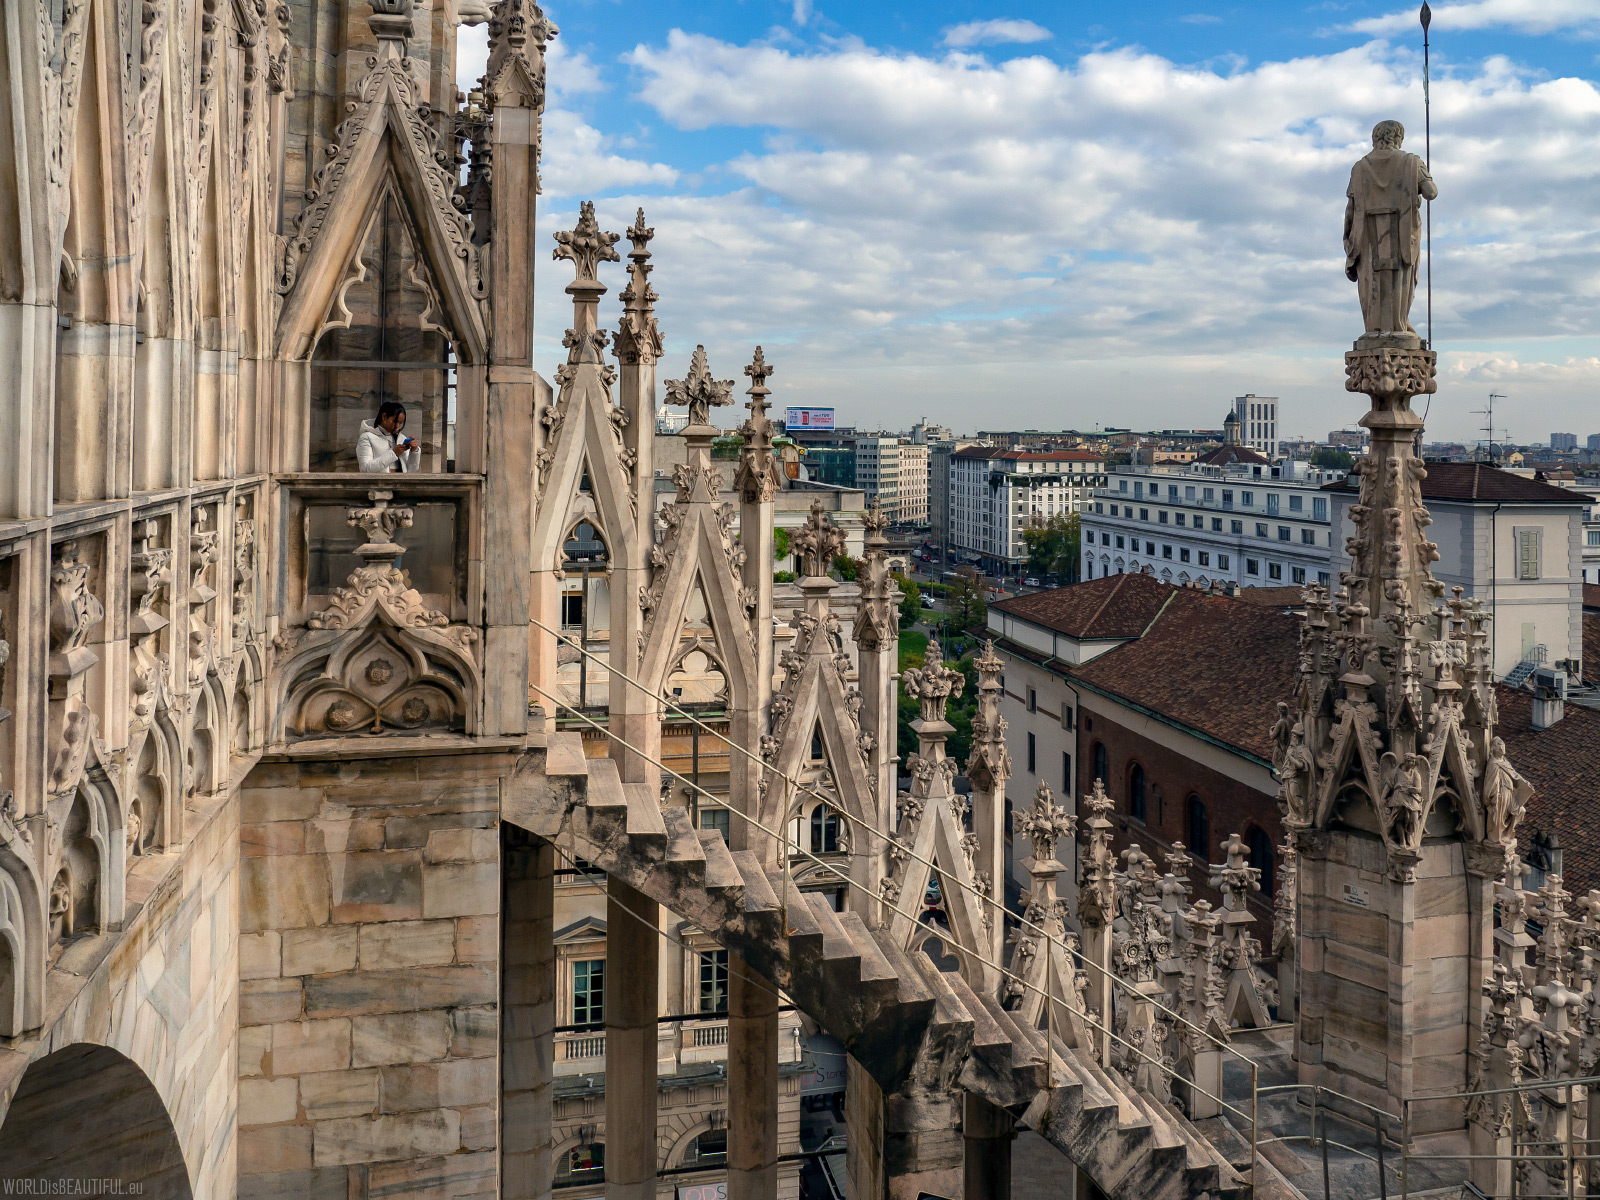 Visiting the roof of the cathedral